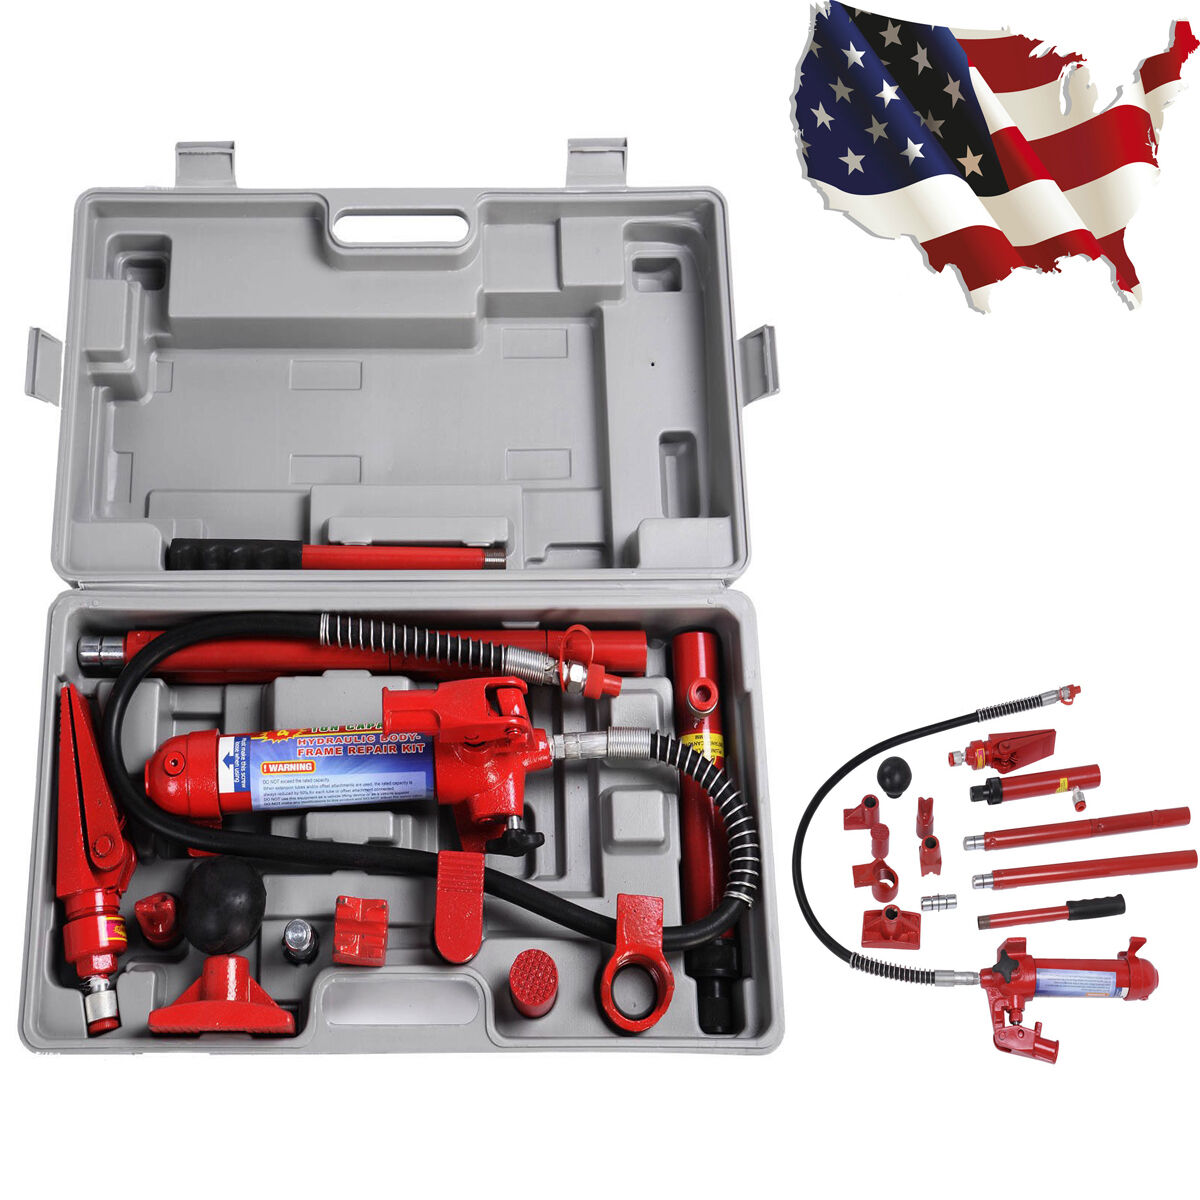 Heavy Duty 4 Ton PORTA Power Hydraulic Jack Body Frame Repair Kit ...